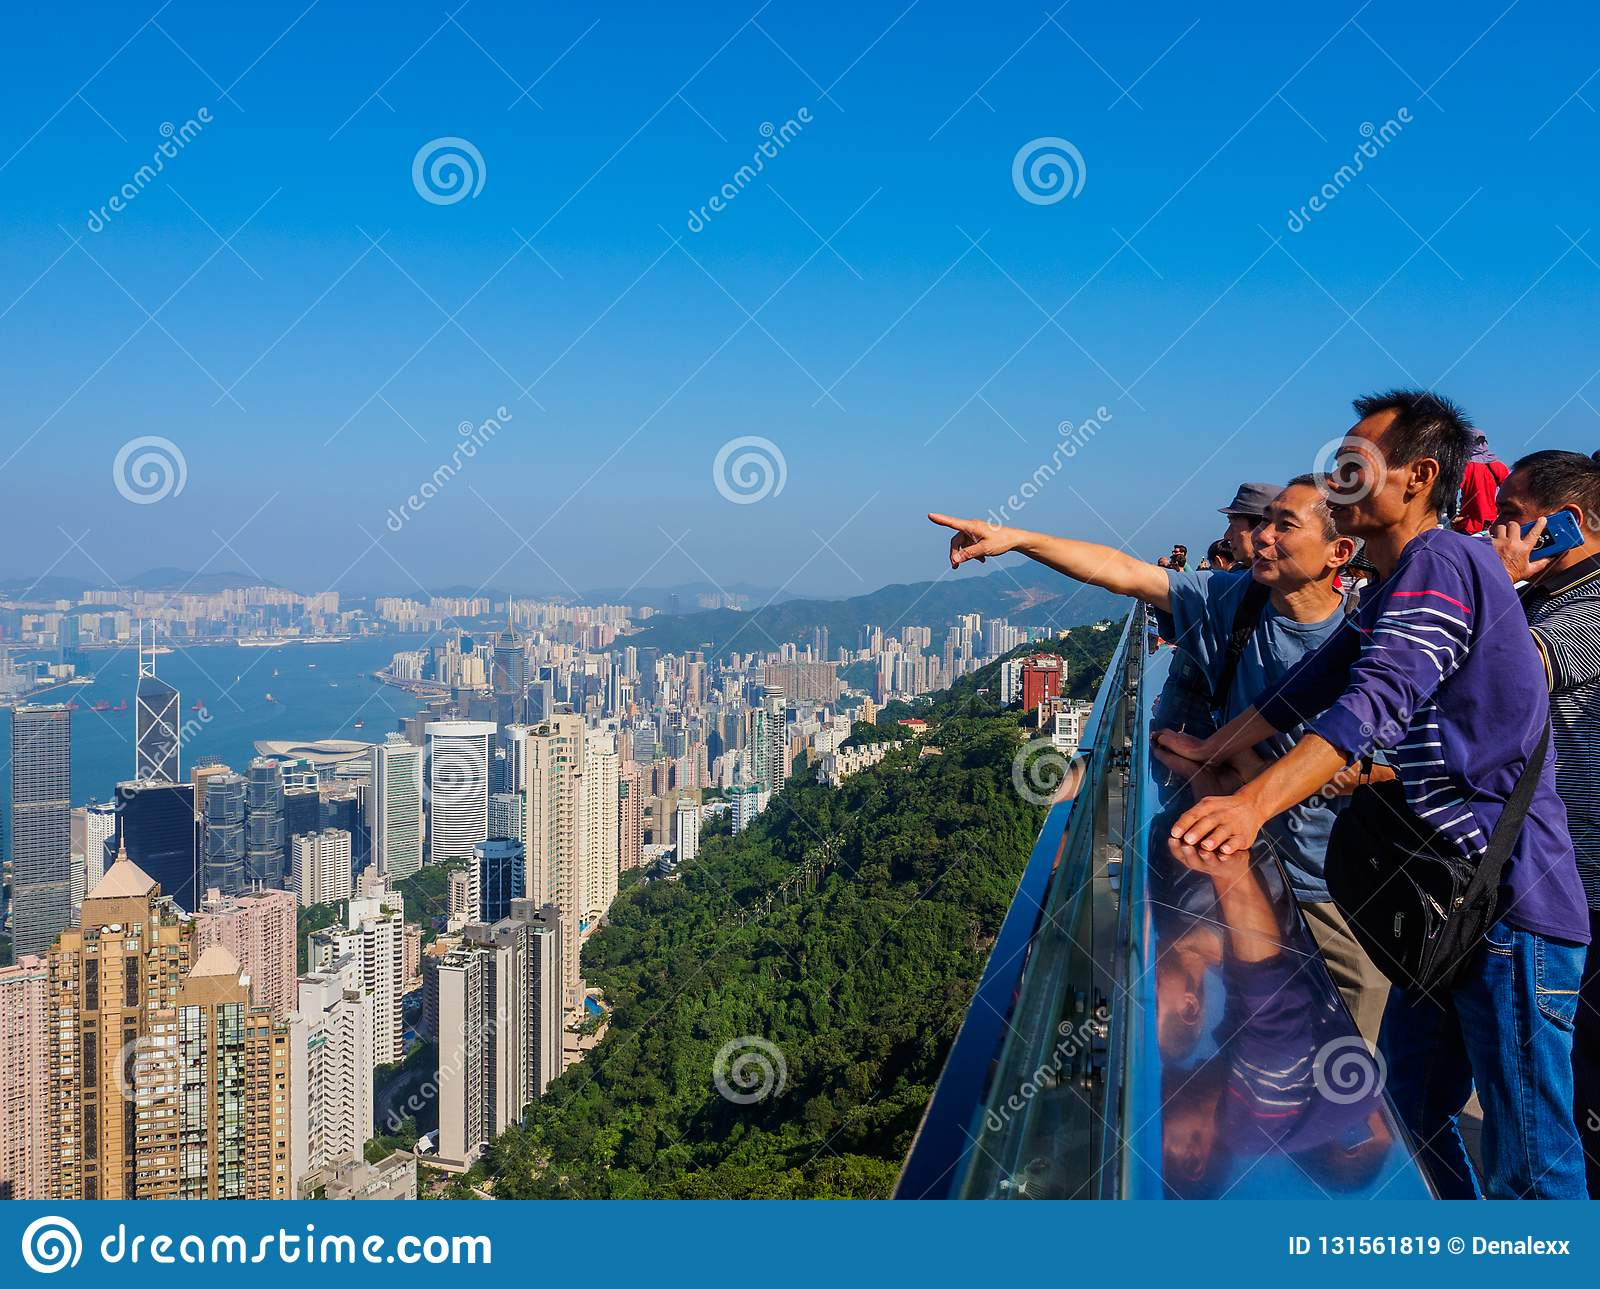 A group of tourists from the Chinese mainland, enjoying the view over Hong Kong from the